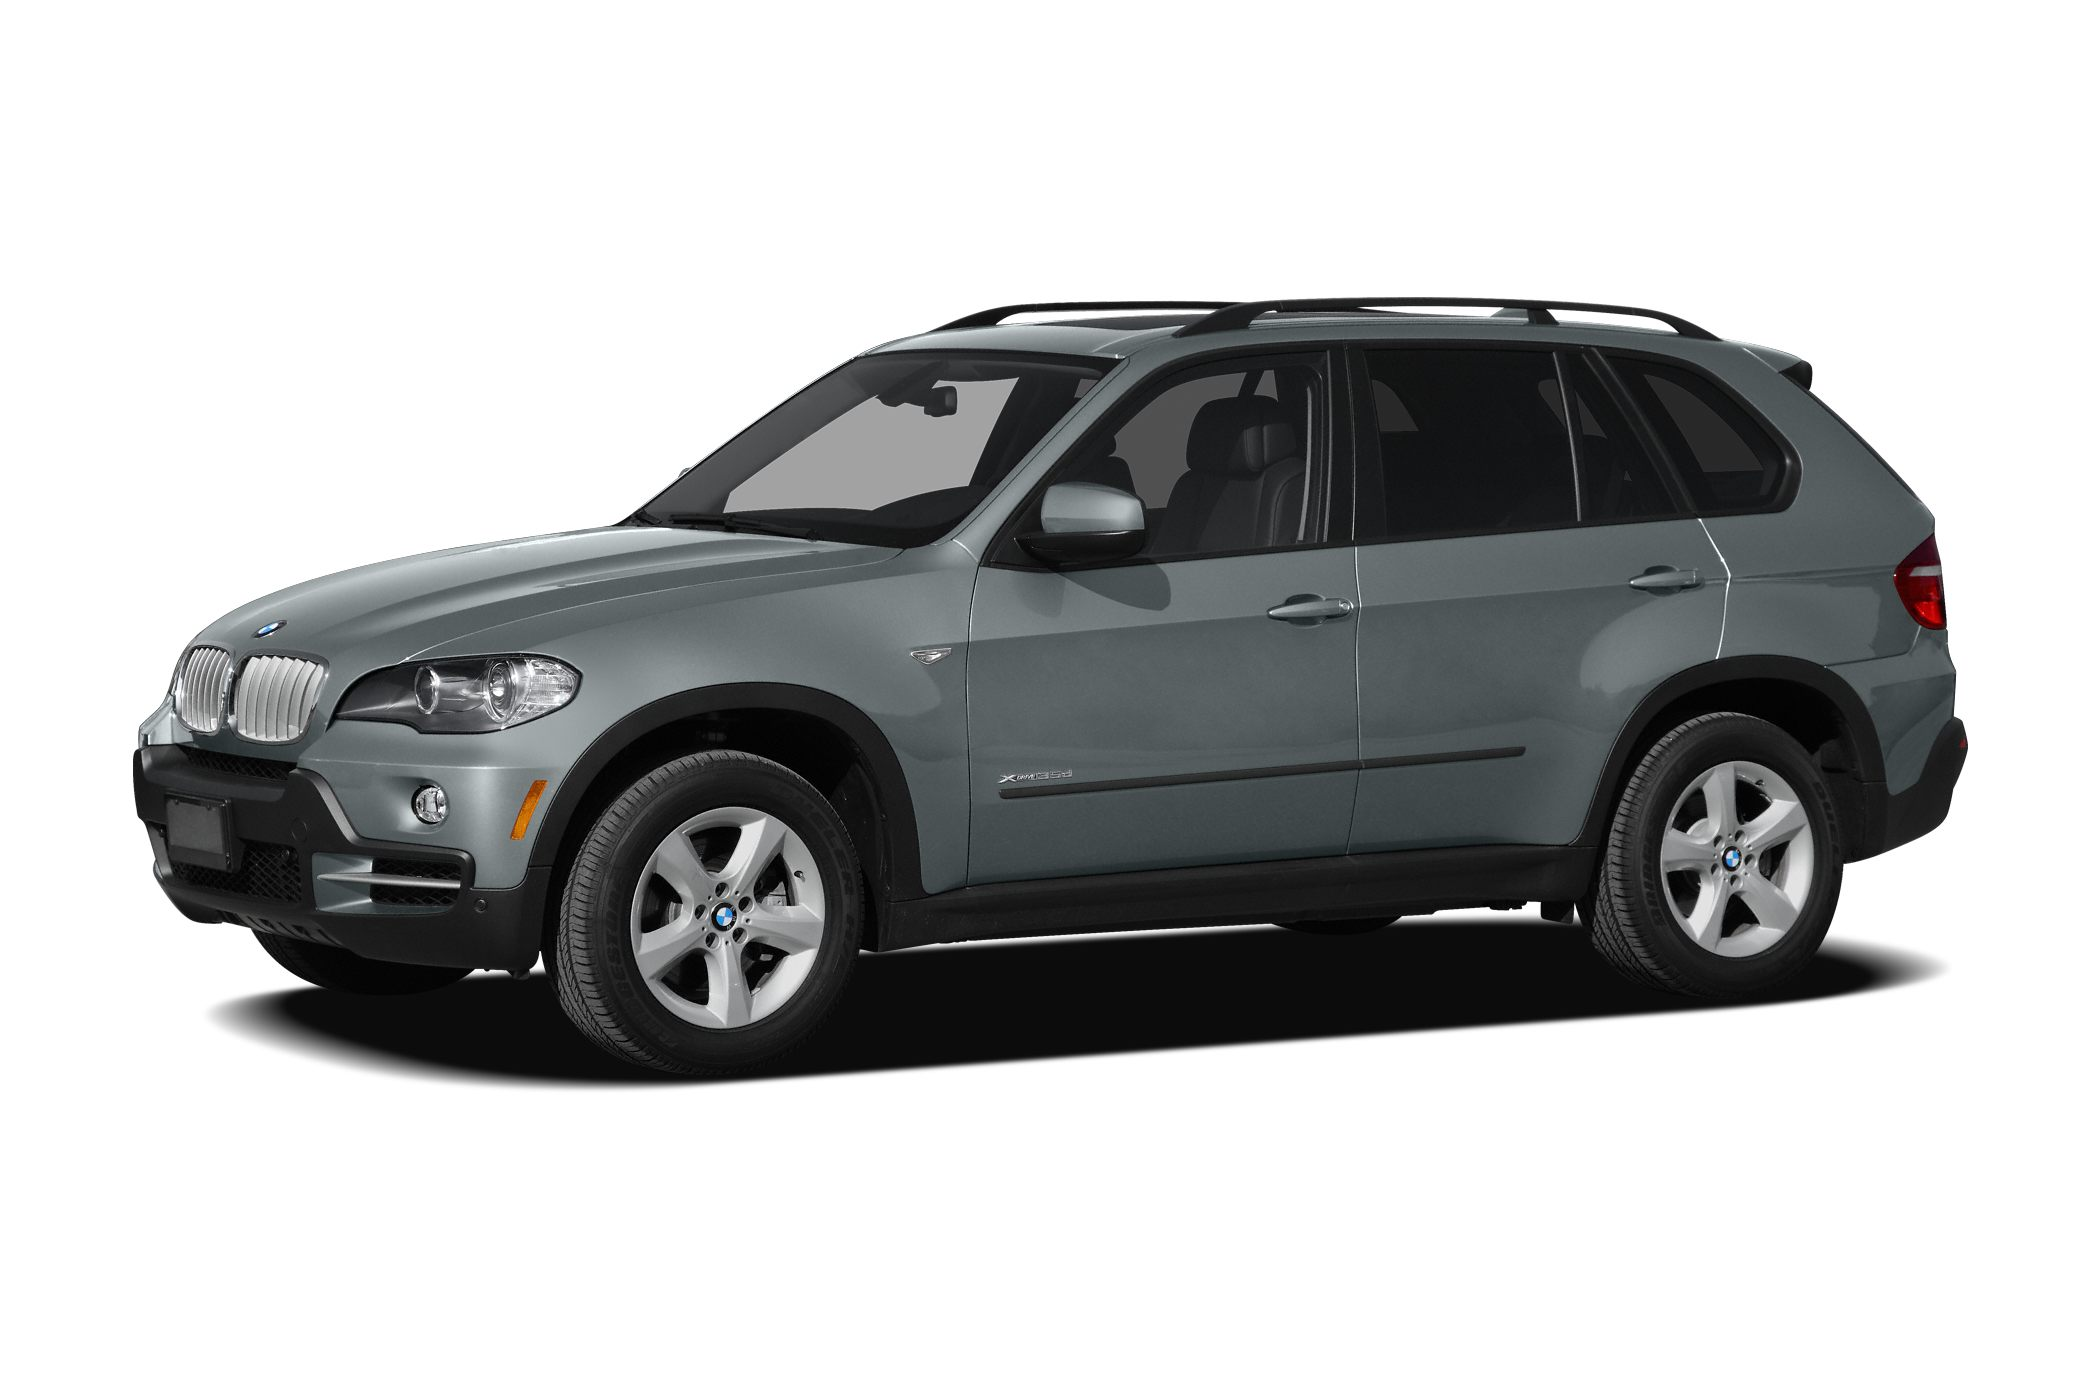 2010 Bmw X5 Xdrive48i 4dr All Wheel Drive Sports Activity Vehicle Specs And Prices